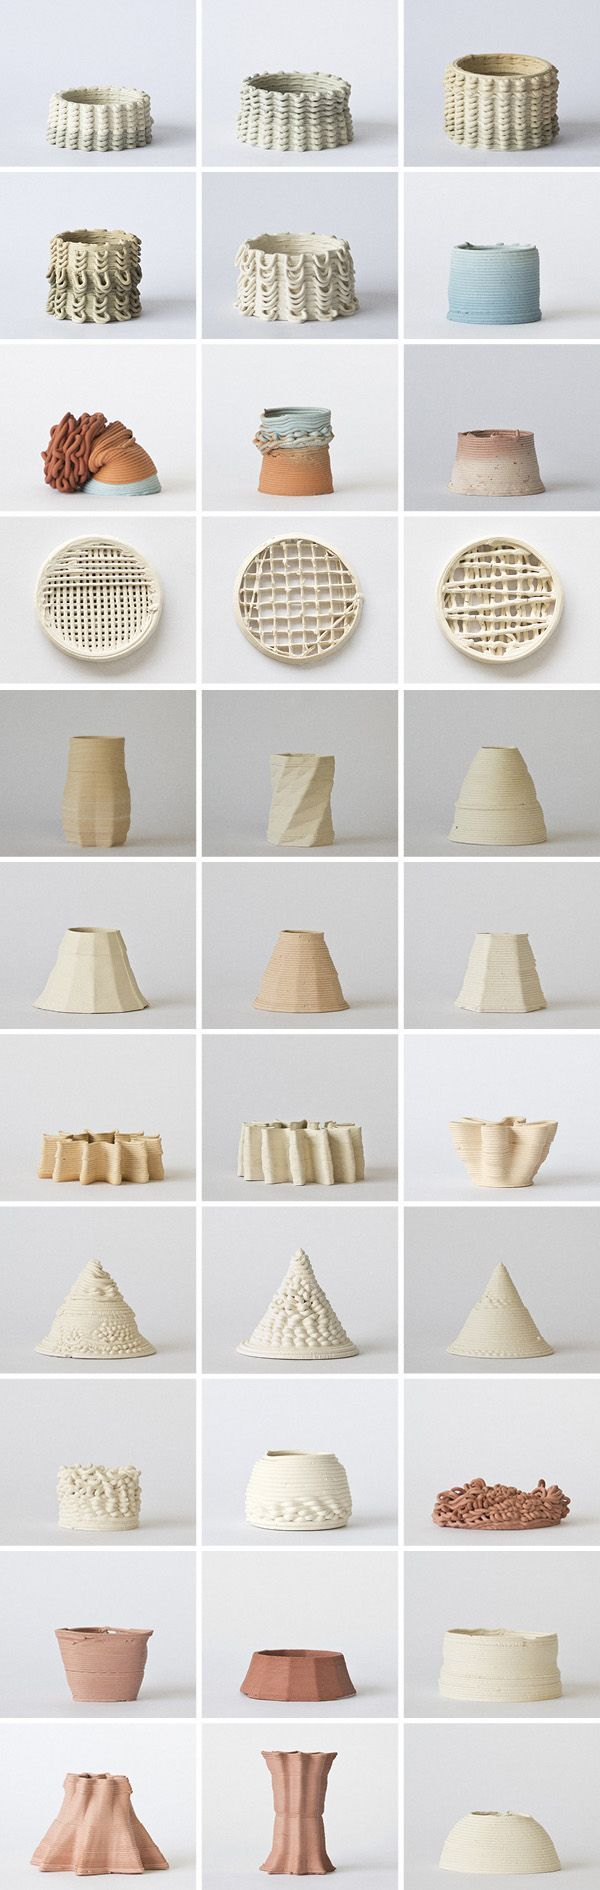 Beautiful study of form and trial manufacturing | 3D printed ceramics Maybe something for 3D Printer Chat?